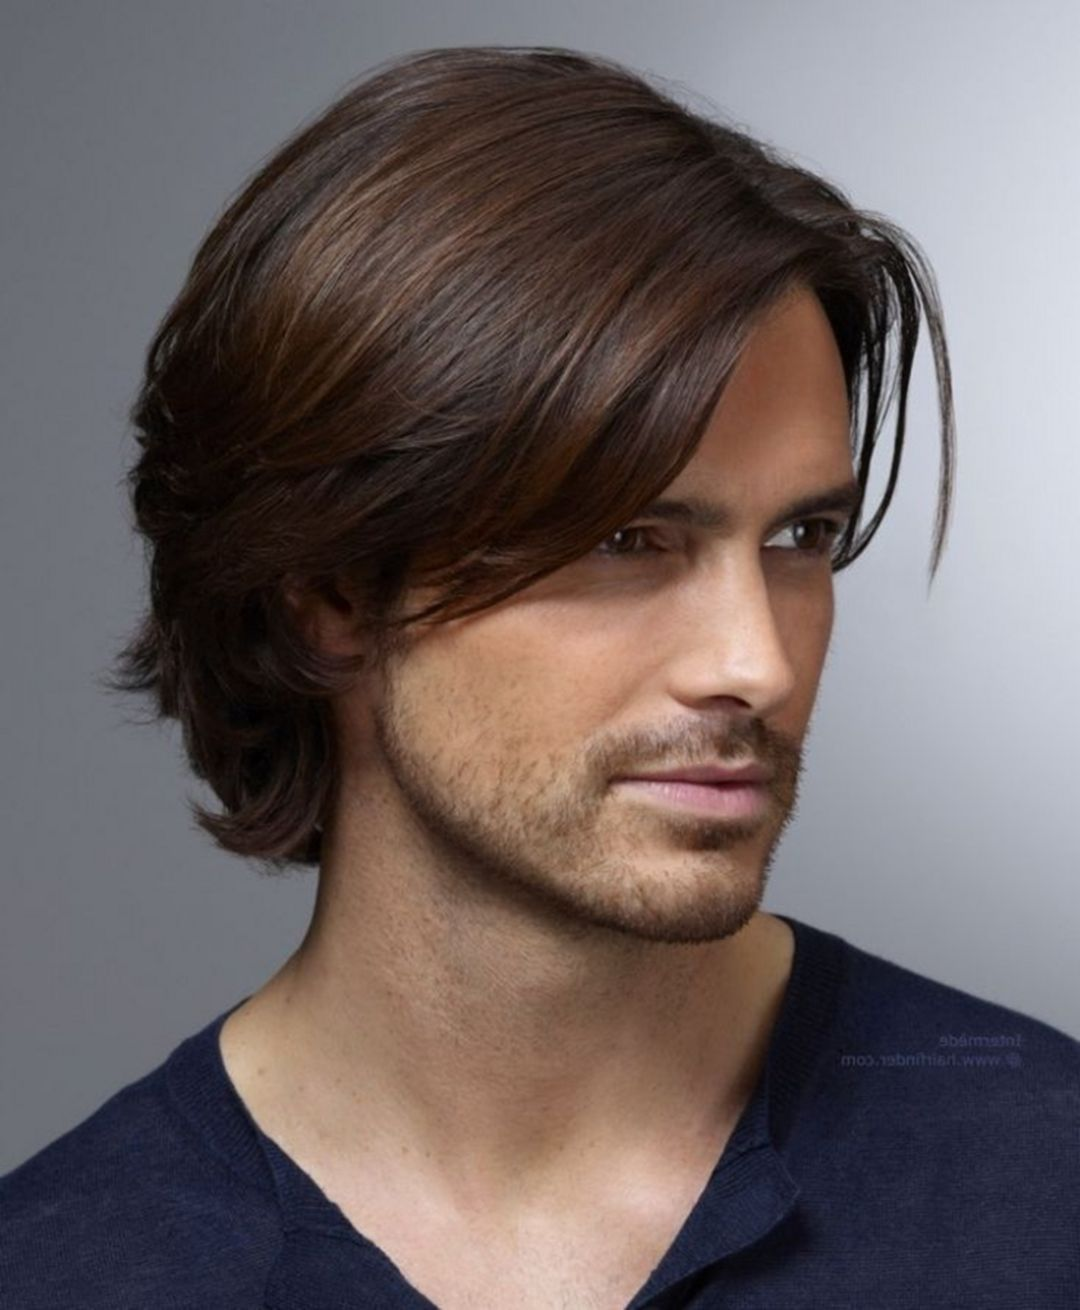 10 Cool Men S Long Hairstyles For You To Have Fashions Nowadays In 2020 Long Hair Styles Men Men S Long Hairstyles Thick Hair Styles